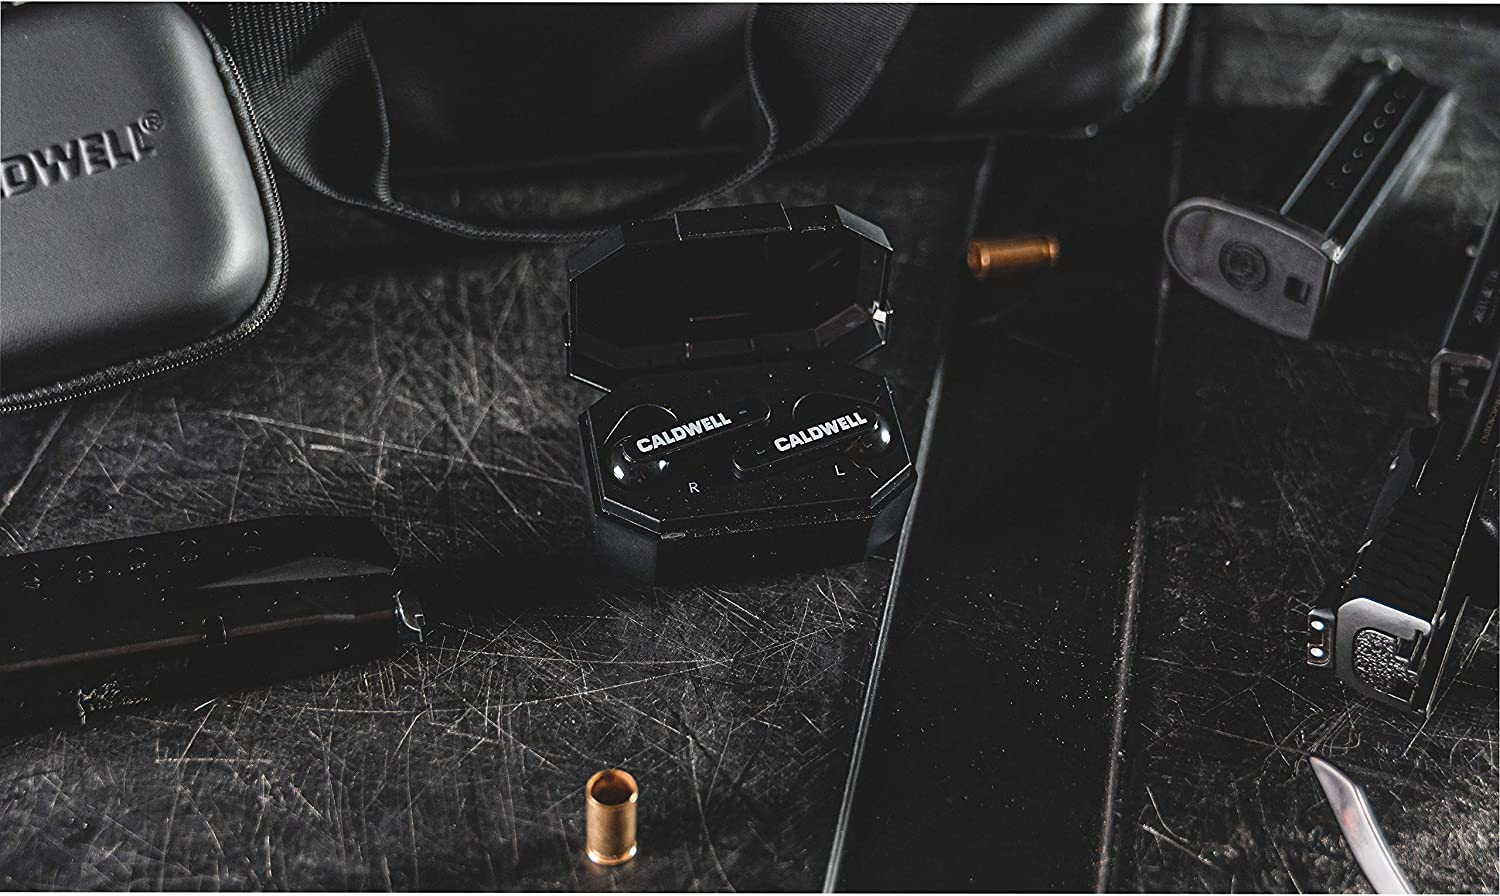 Hunting and Range Electronic Hearing Protection with Bluetooth Connectivity for Shooting Caldwell E-Max Shadows 23 NRR